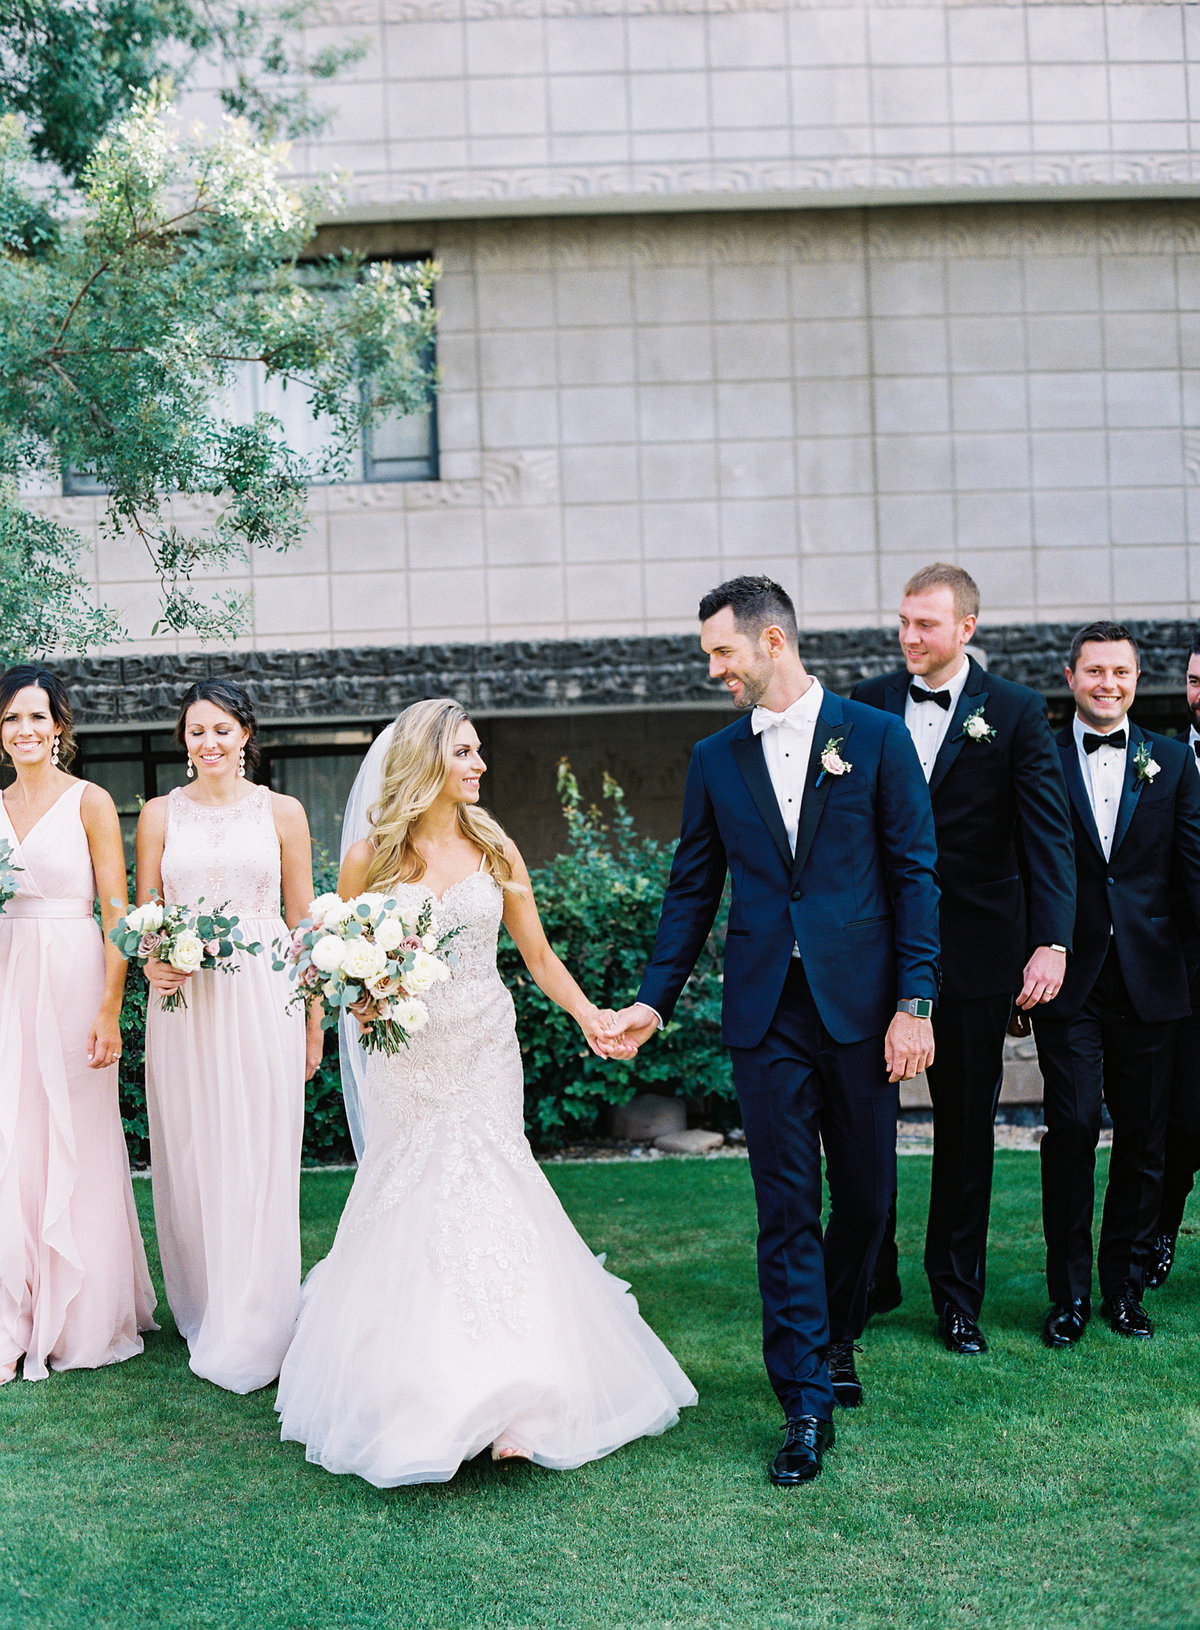 Arizona Biltmore Wedding - Mary Claire Photography-44